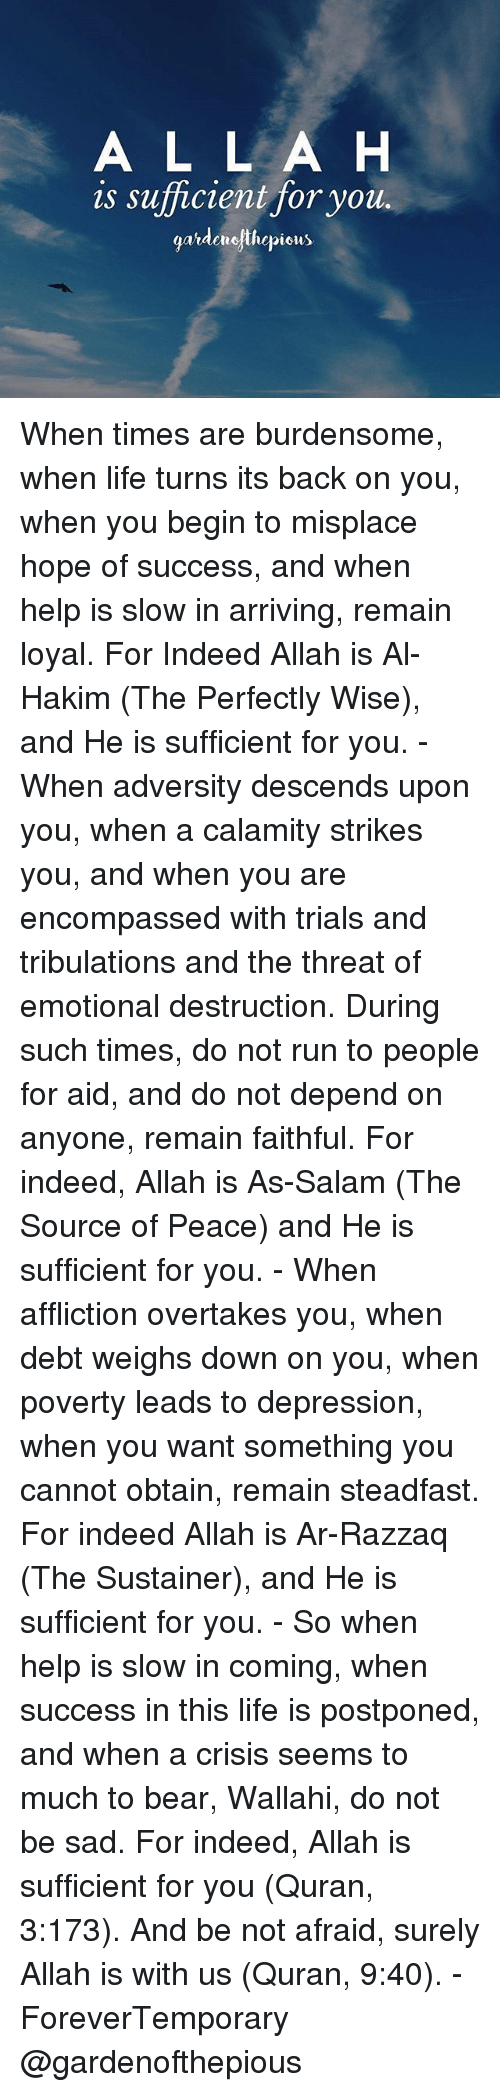 affliction: A L L A H  is sufficient for you  gatdemejthepiets When times are burdensome, when life turns its back on you, when you begin to misplace hope of success, and when help is slow in arriving, remain loyal. For Indeed Allah is Al-Hakim (The Perfectly Wise), and He is sufficient for you. - When adversity descends upon you, when a calamity strikes you, and when you are encompassed with trials and tribulations and the threat of emotional destruction. During such times, do not run to people for aid, and do not depend on anyone, remain faithful. For indeed, Allah is As-Salam (The Source of Peace) and He is sufficient for you. - When affliction overtakes you, when debt weighs down on you, when poverty leads to depression, when you want something you cannot obtain, remain steadfast. For indeed Allah is Ar-Razzaq (The Sustainer), and He is sufficient for you. - So when help is slow in coming, when success in this life is postponed, and when a crisis seems to much to bear, Wallahi, do not be sad. For indeed, Allah is sufficient for you (Quran, 3:173). And be not afraid, surely Allah is with us (Quran, 9:40). - ForeverTemporary @gardenofthepious